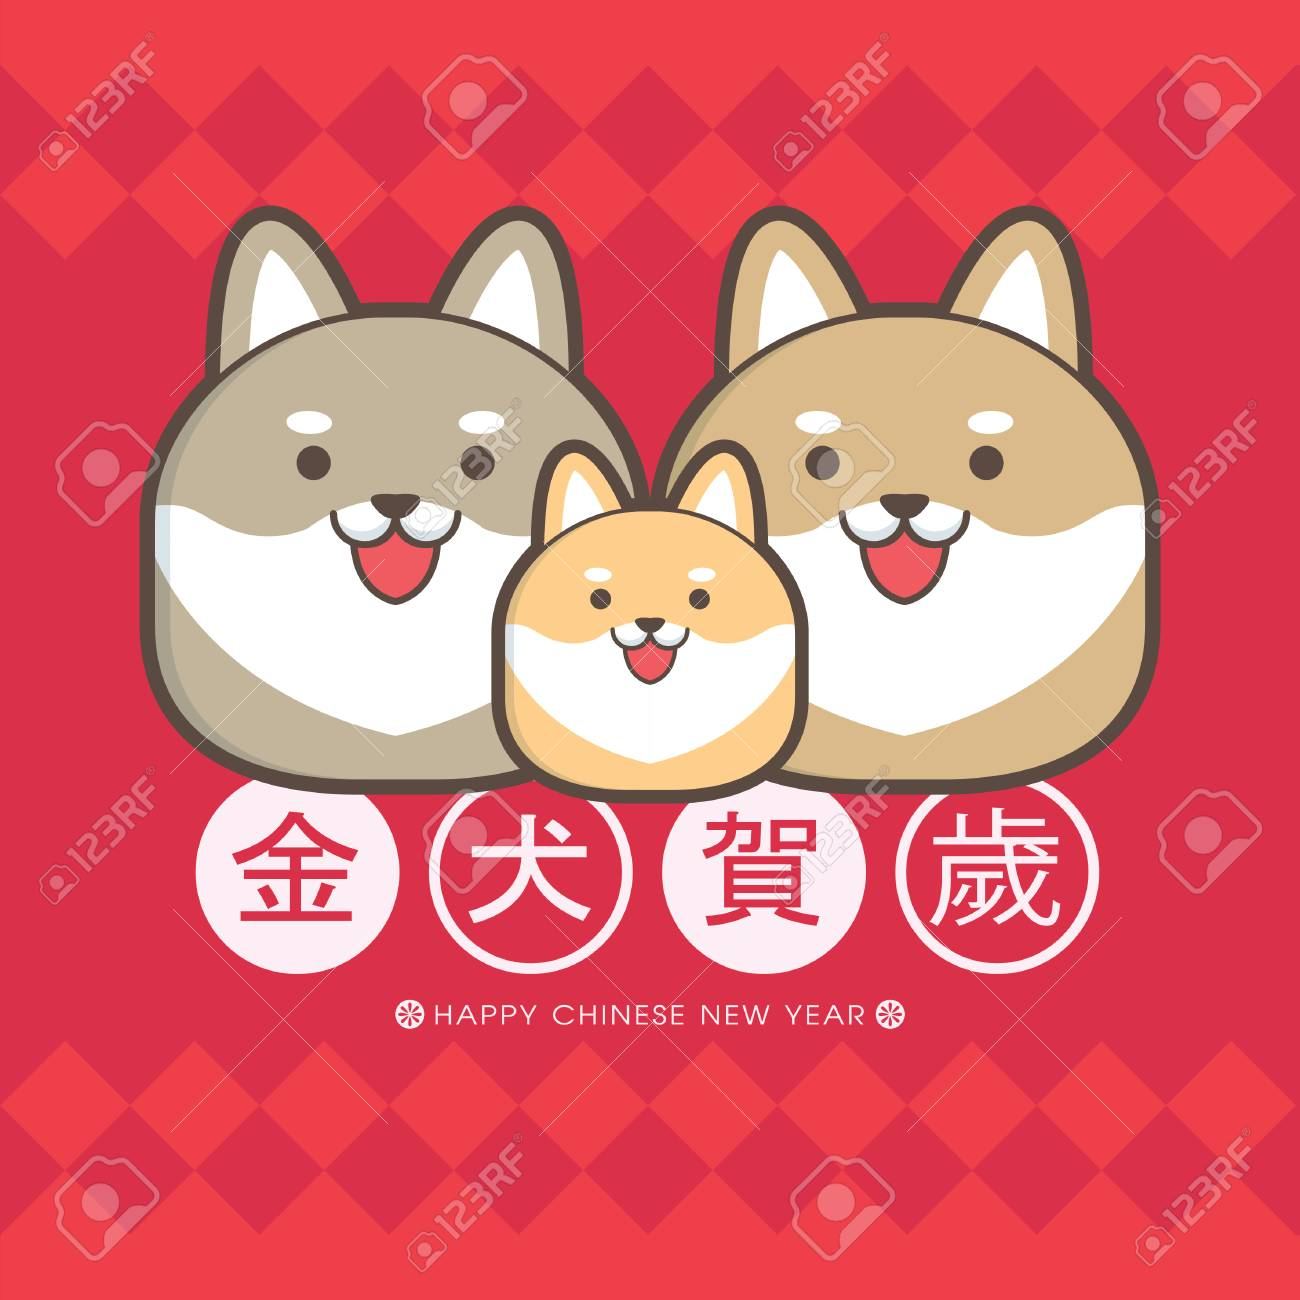 2018 chinese new year year of dog greeting card template translation fortune